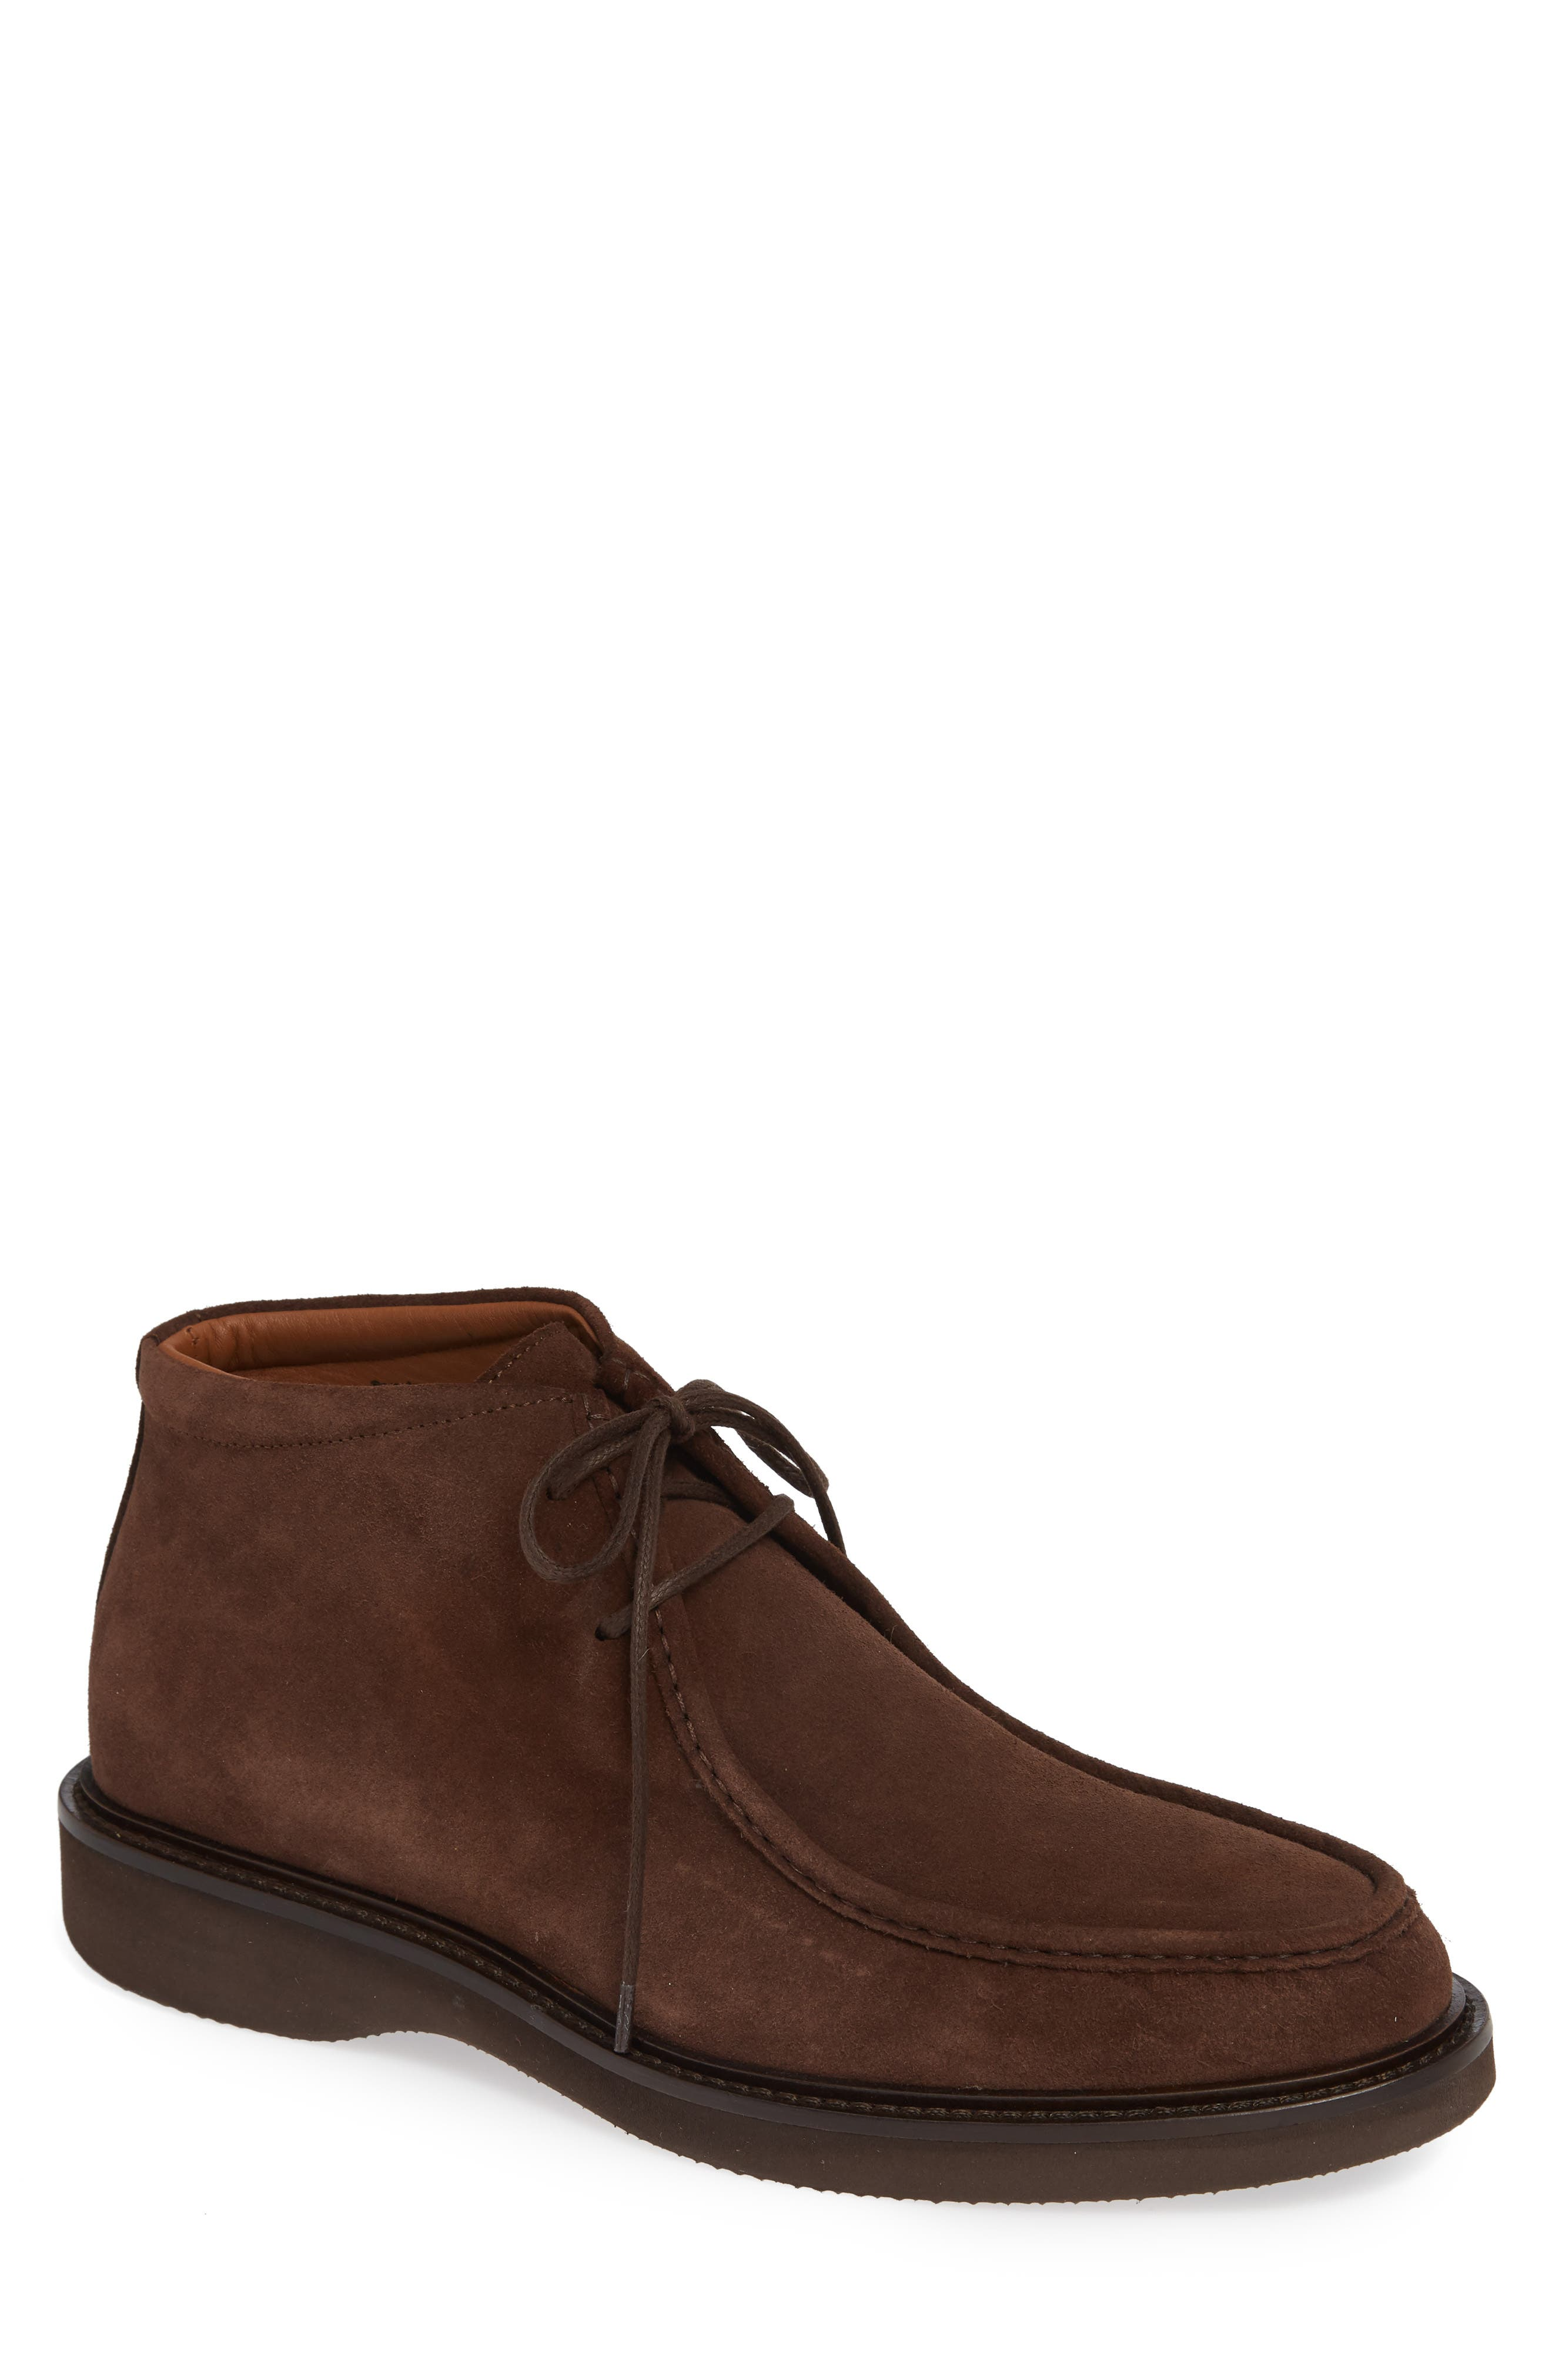 Aquatalia Kyle Water Resistant Chukka Boot, Brown